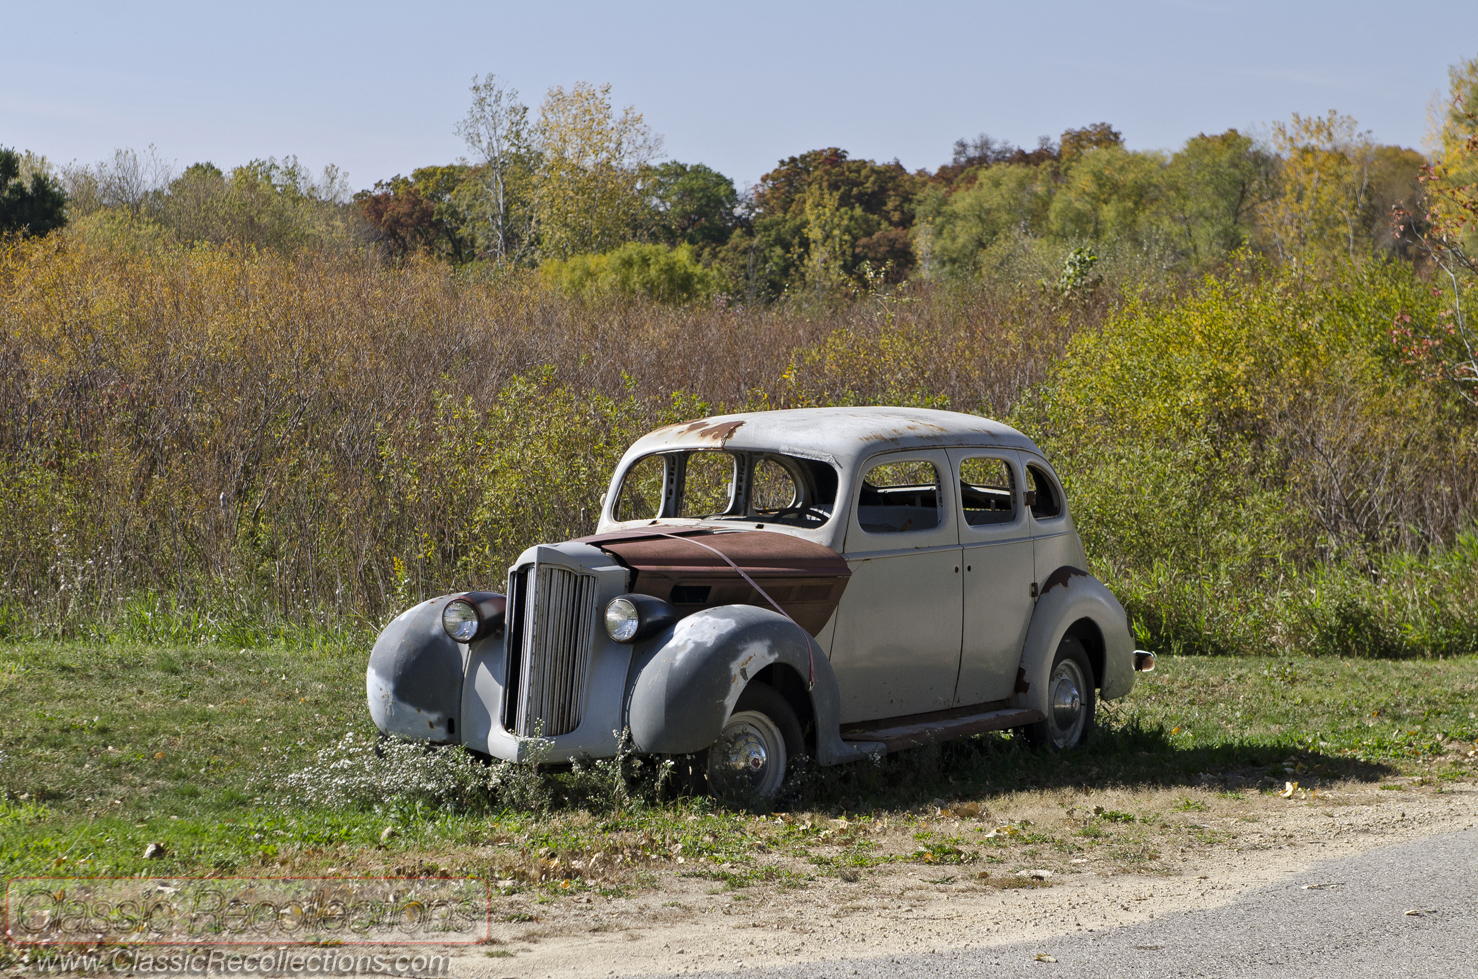 PROJECT CAR: 1939 Packard Sedan – Classic Recollections